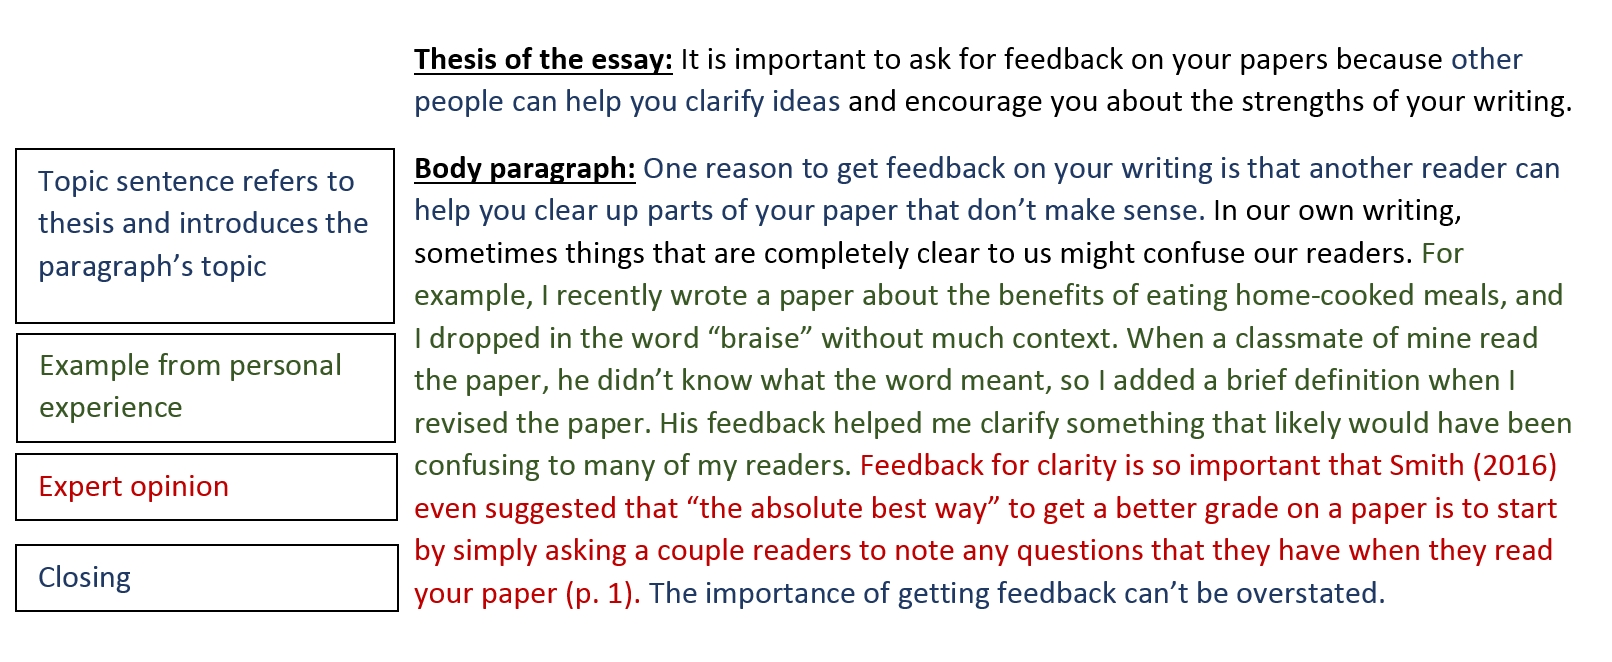 Body Paragraphs Of An Essay Body Paragraphs Writing Your Paper pertaining to Body Paragraph Example For Research Paper 18831